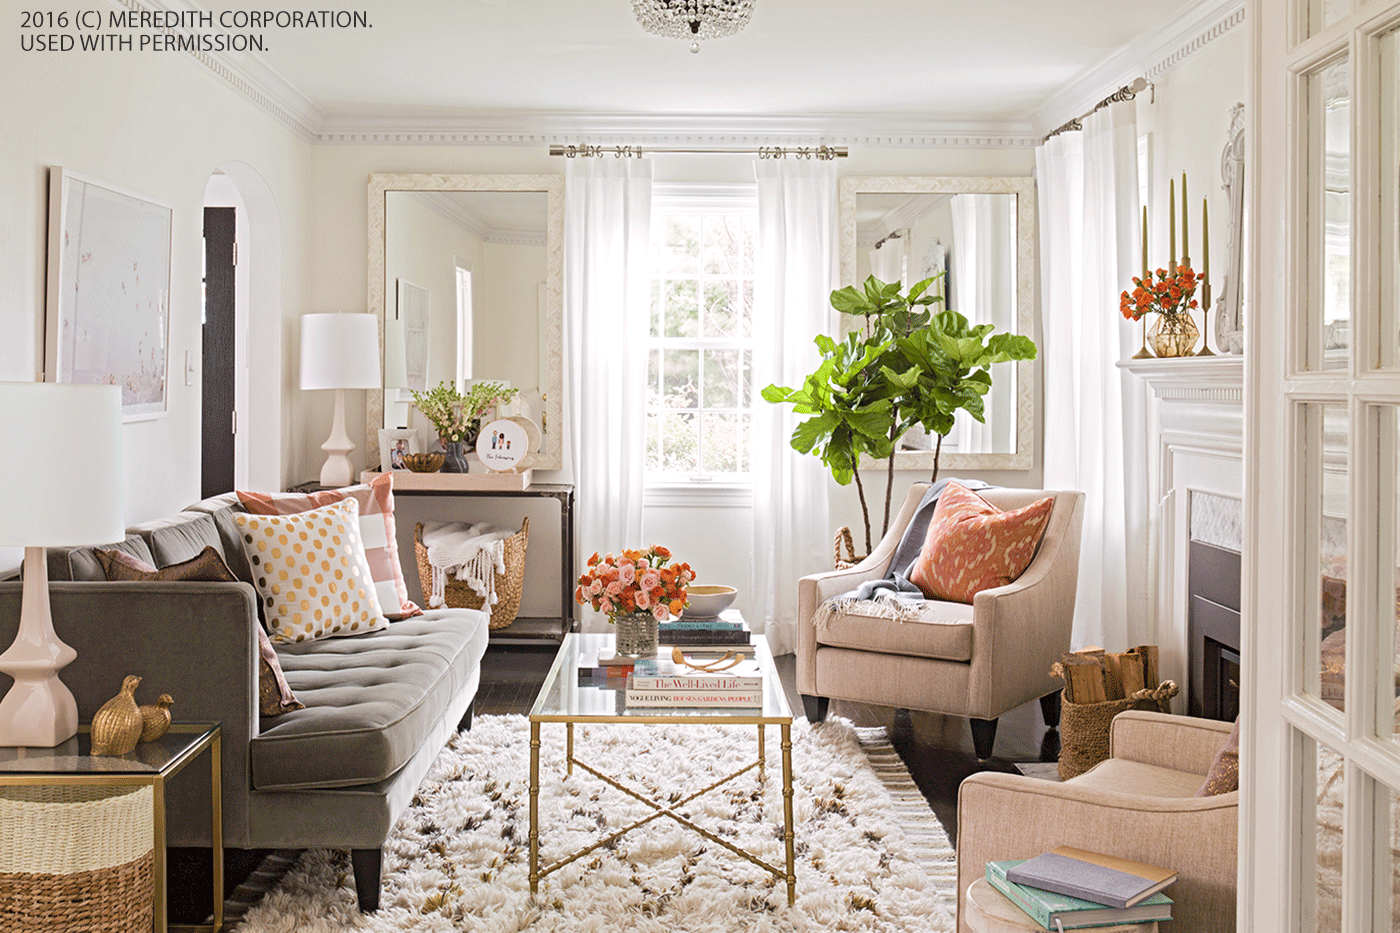 Living Room Solutions - How to Design Small Spaces With Style